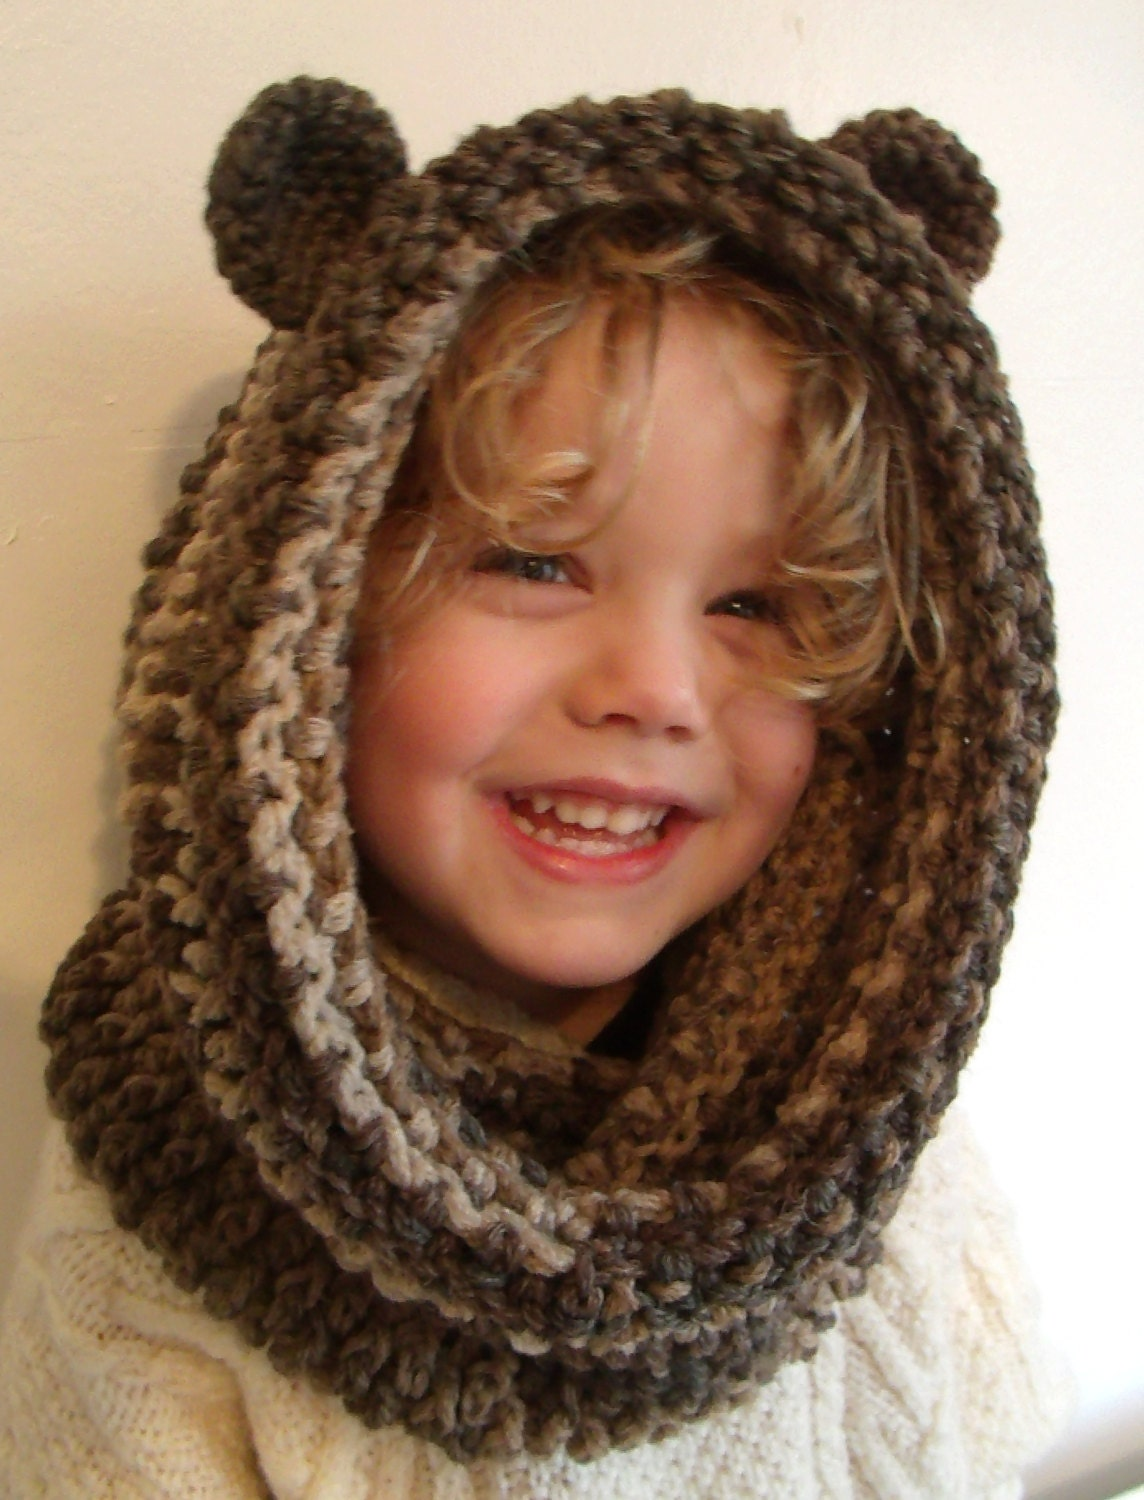 Crochet Bear Snood Hood with Ears INSTANT DOWNLOAD PDF from